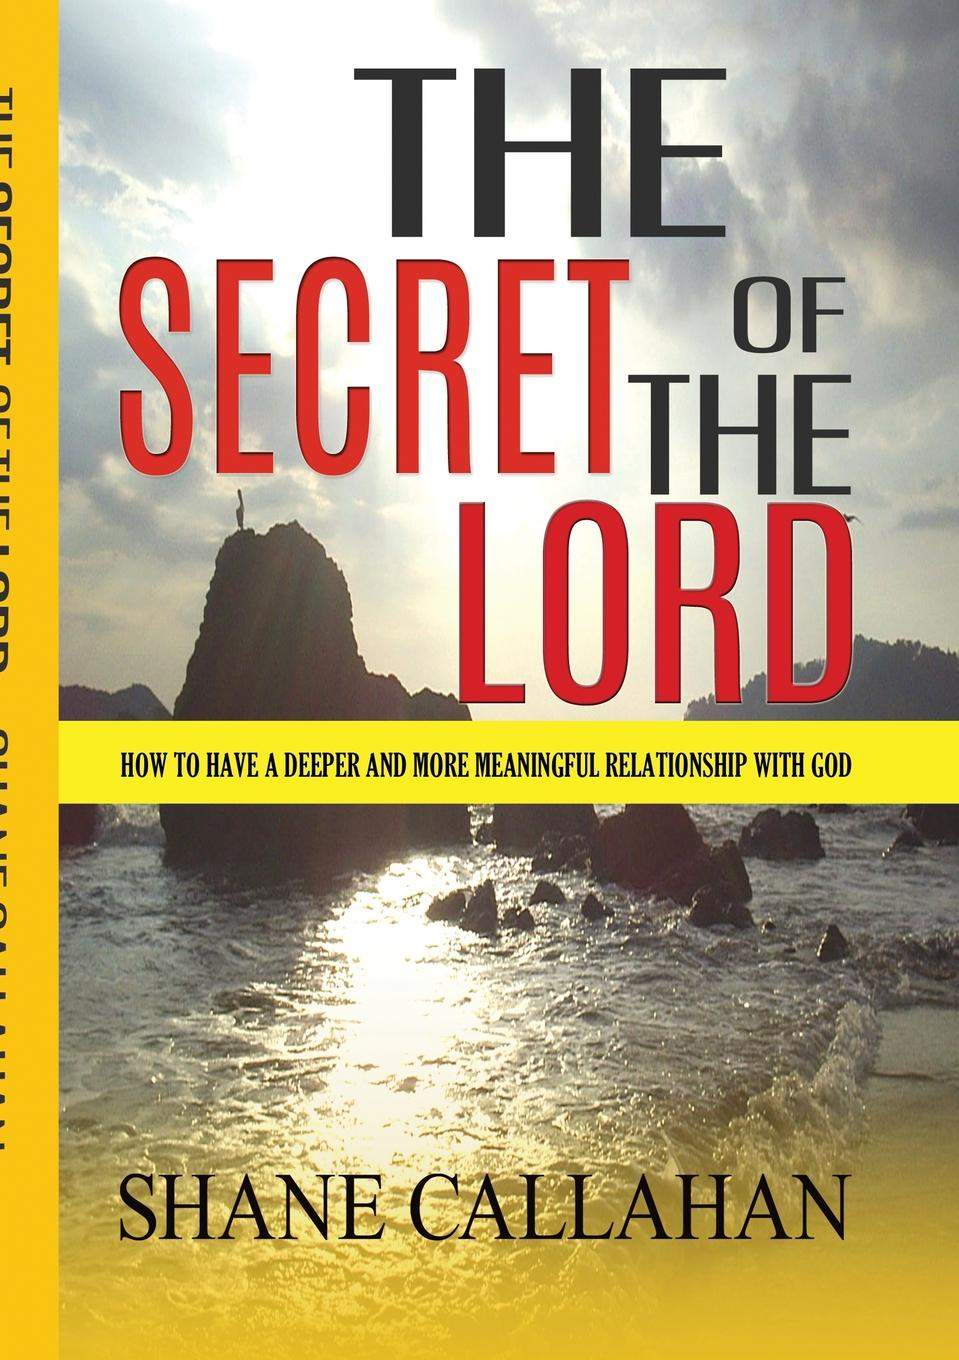 Shane Callahan The Secret of the Lord. How to Have a Deeper and More Meaningful Relationship With God will irons the possibilities of oneness doorways to life s deeper meaning wonder and joy